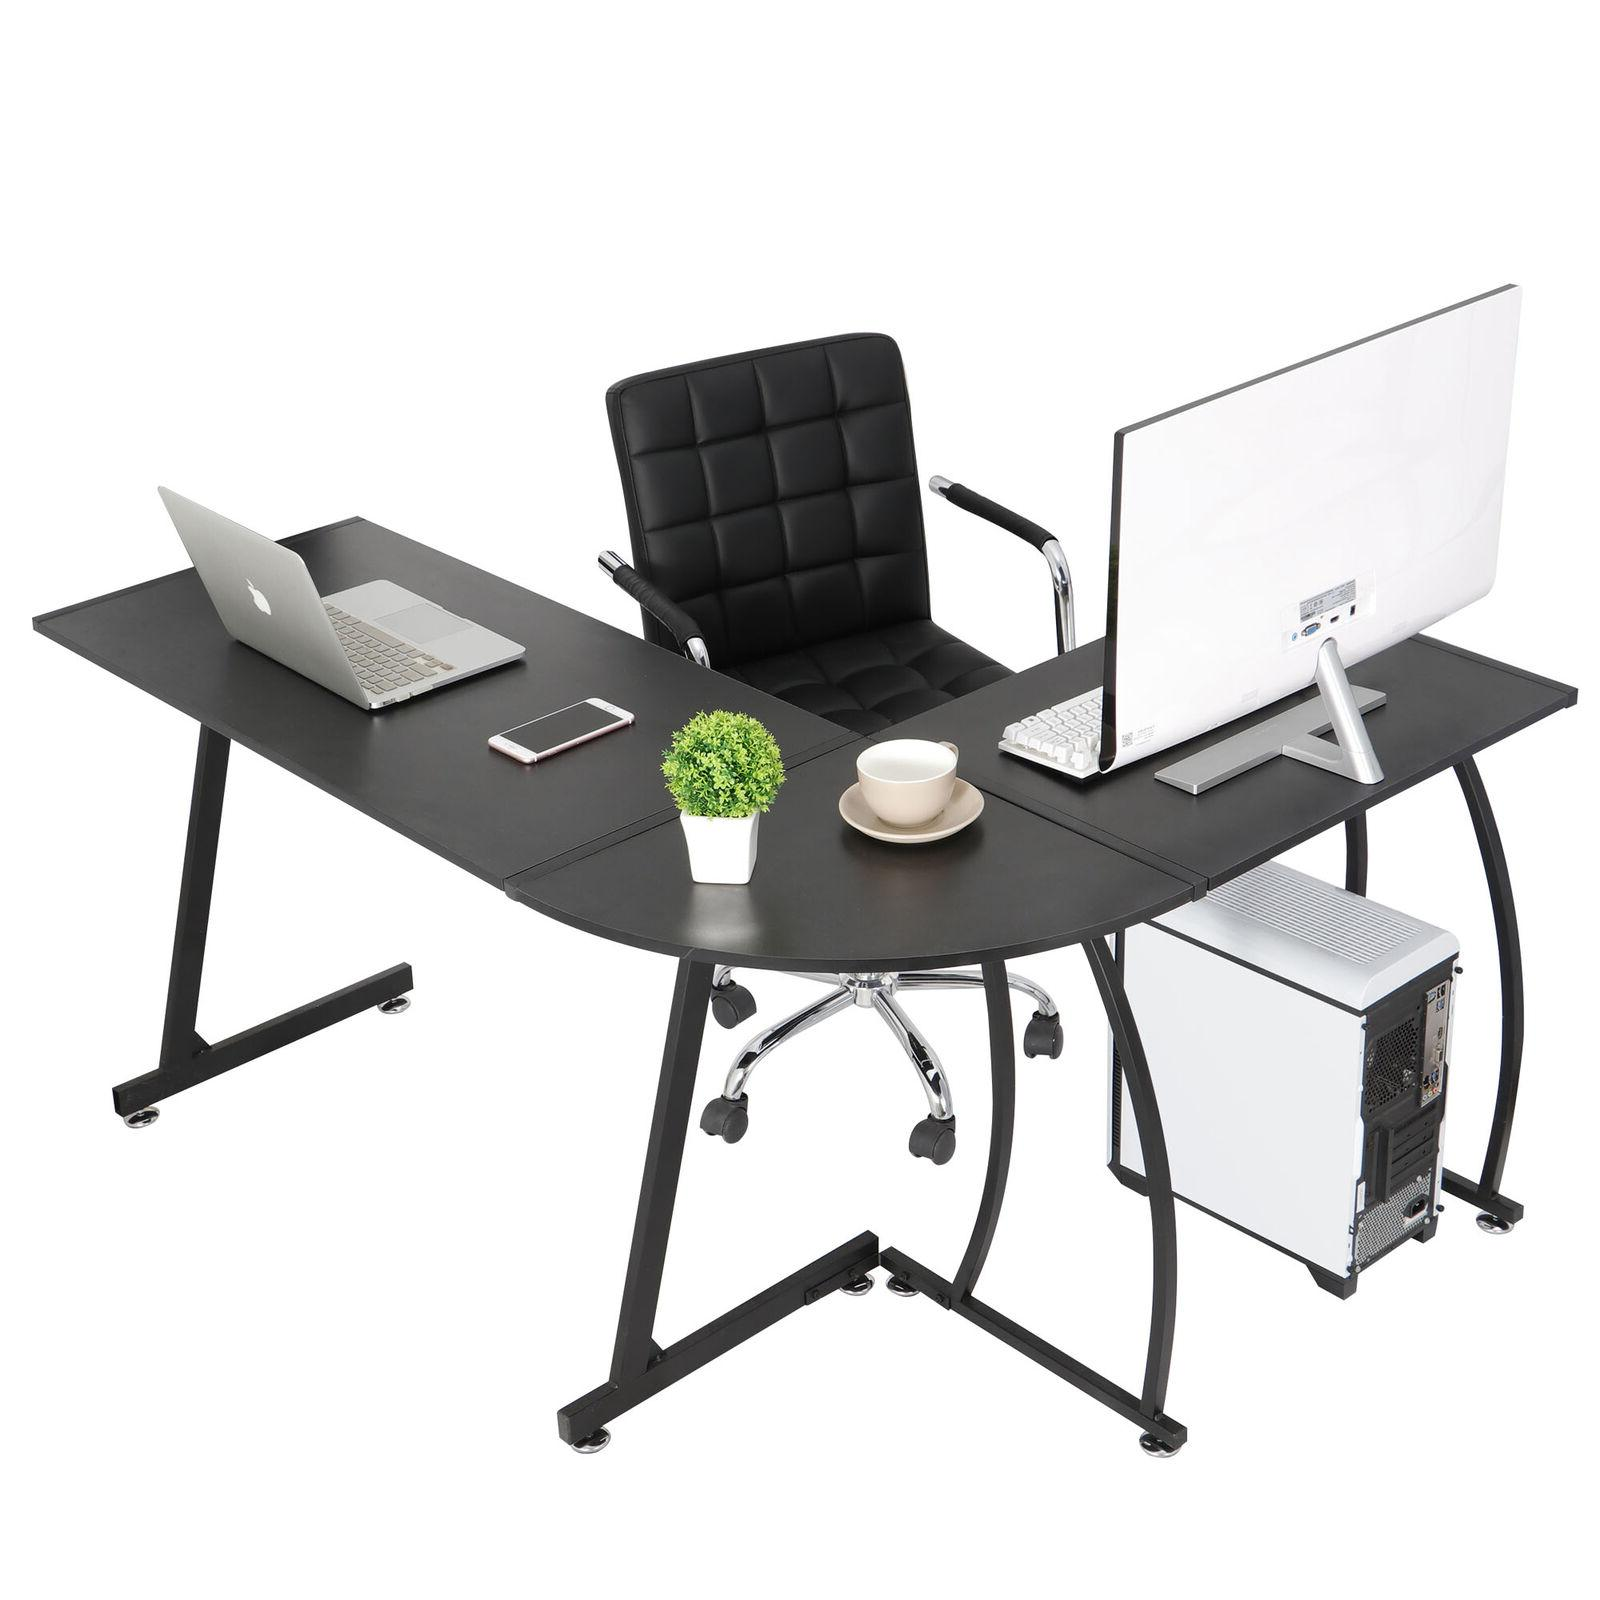 L-Shaped Computer Gaming Desk PC Table Writting Table